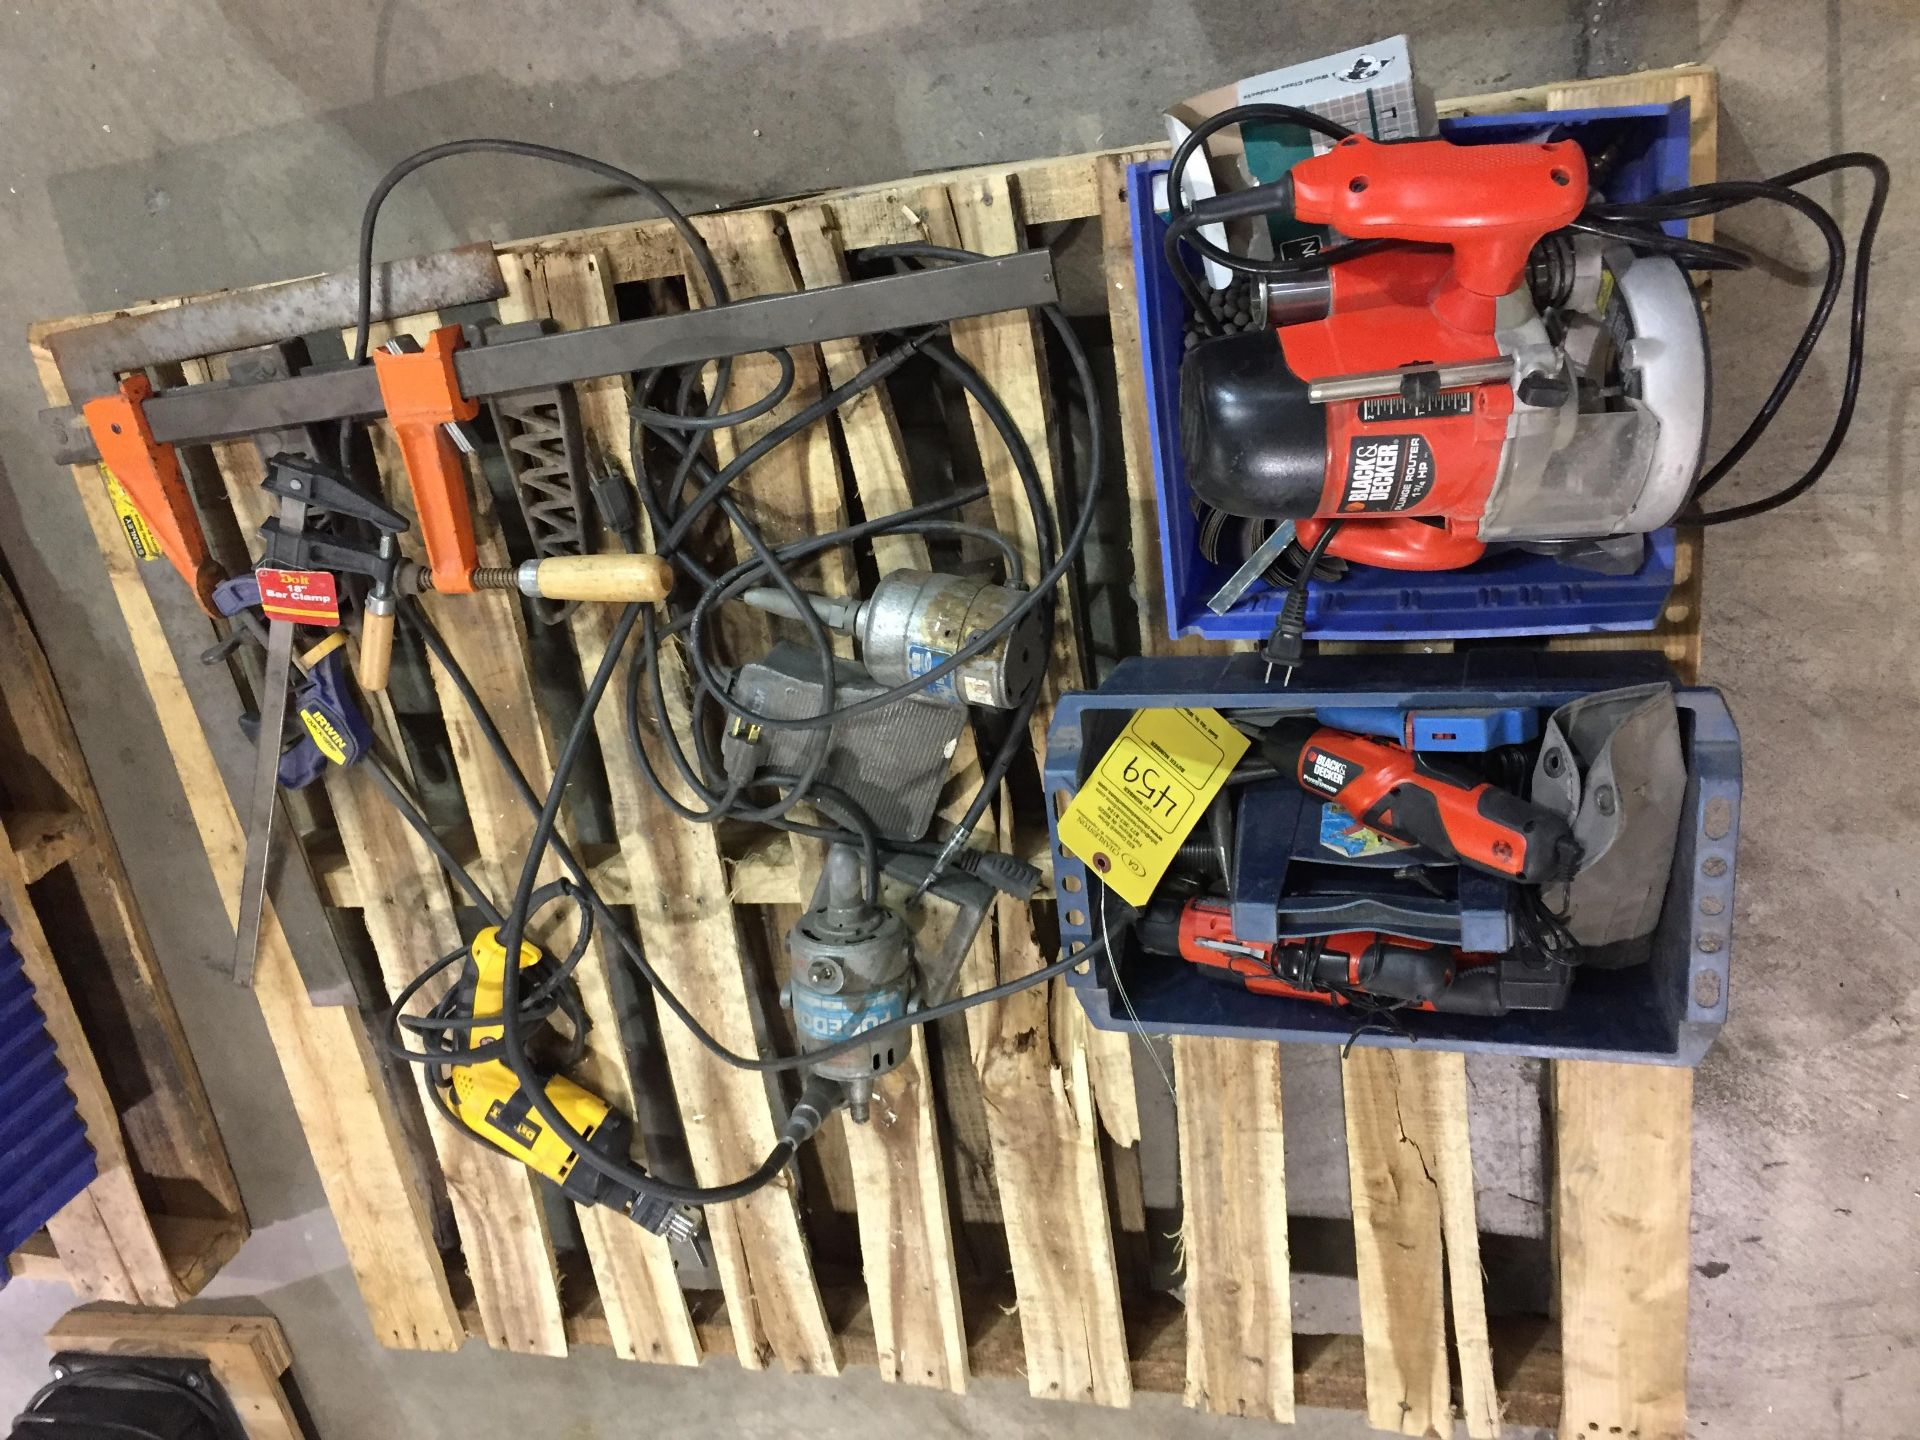 Lot 459 - PALLET OF MISC. POWER TOOLS INCLUDING BLACK & DECKER ROUTER; SCREWDRIVERS; DEWALT DRILL & CLAMPS